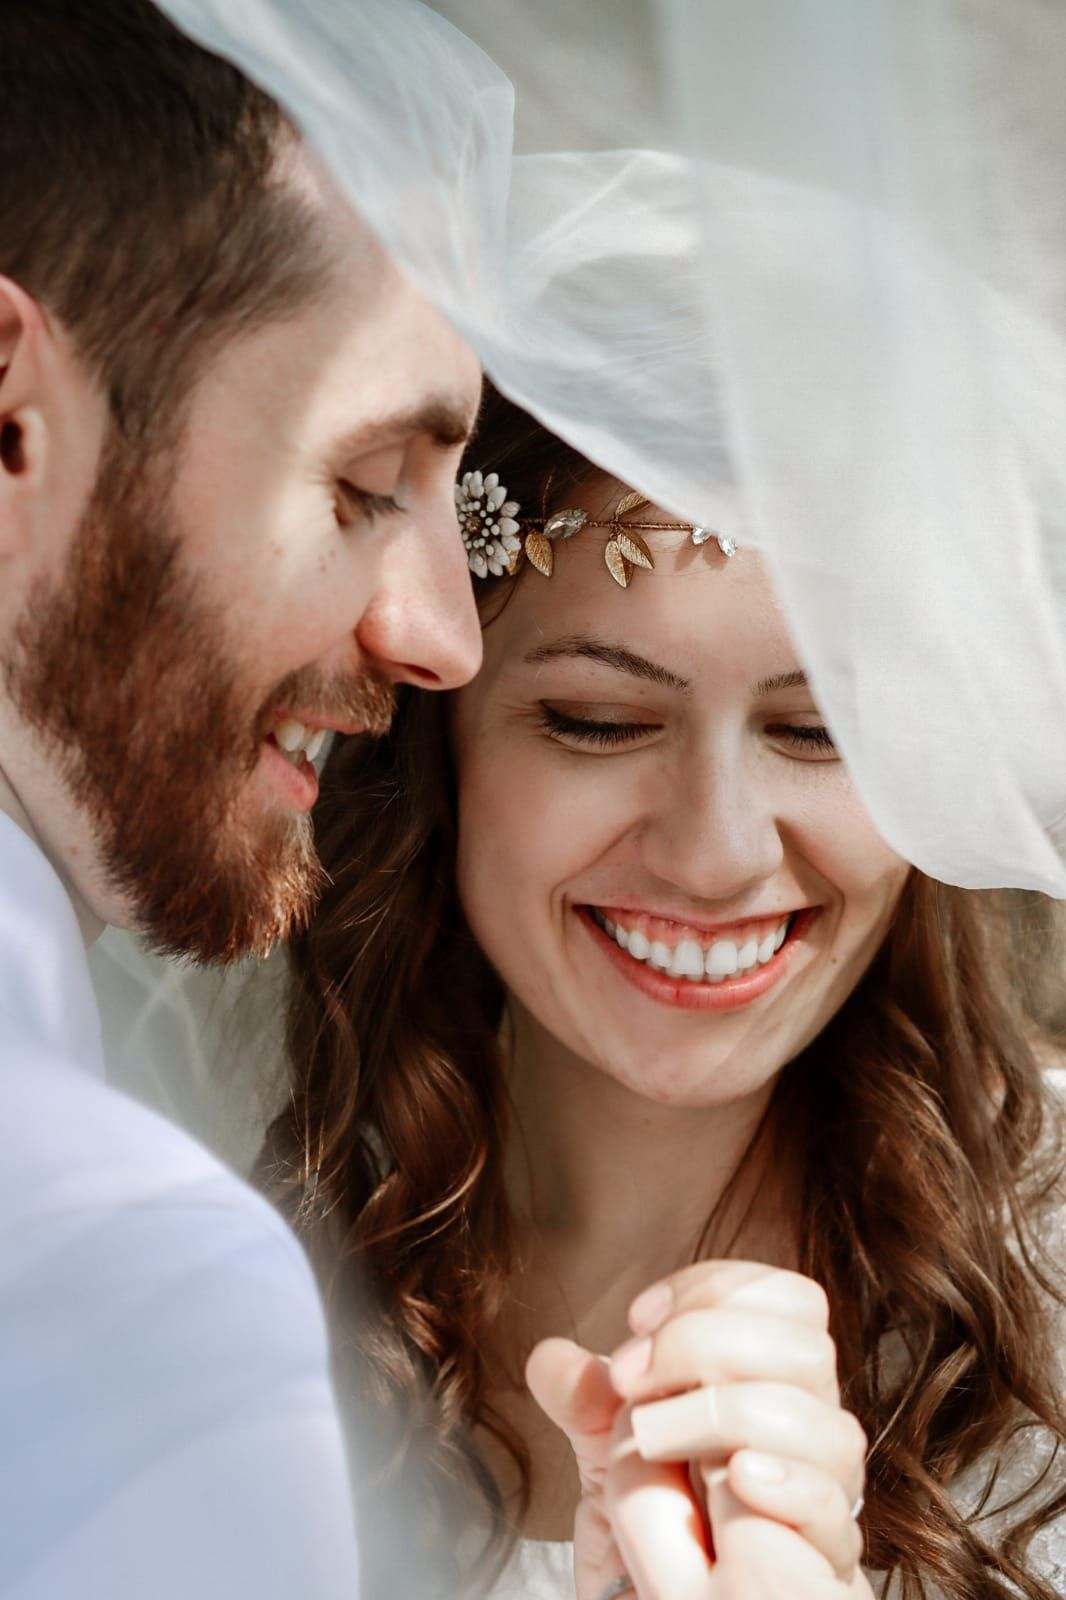 Christian bride smiles with her new husband while looking at her ring